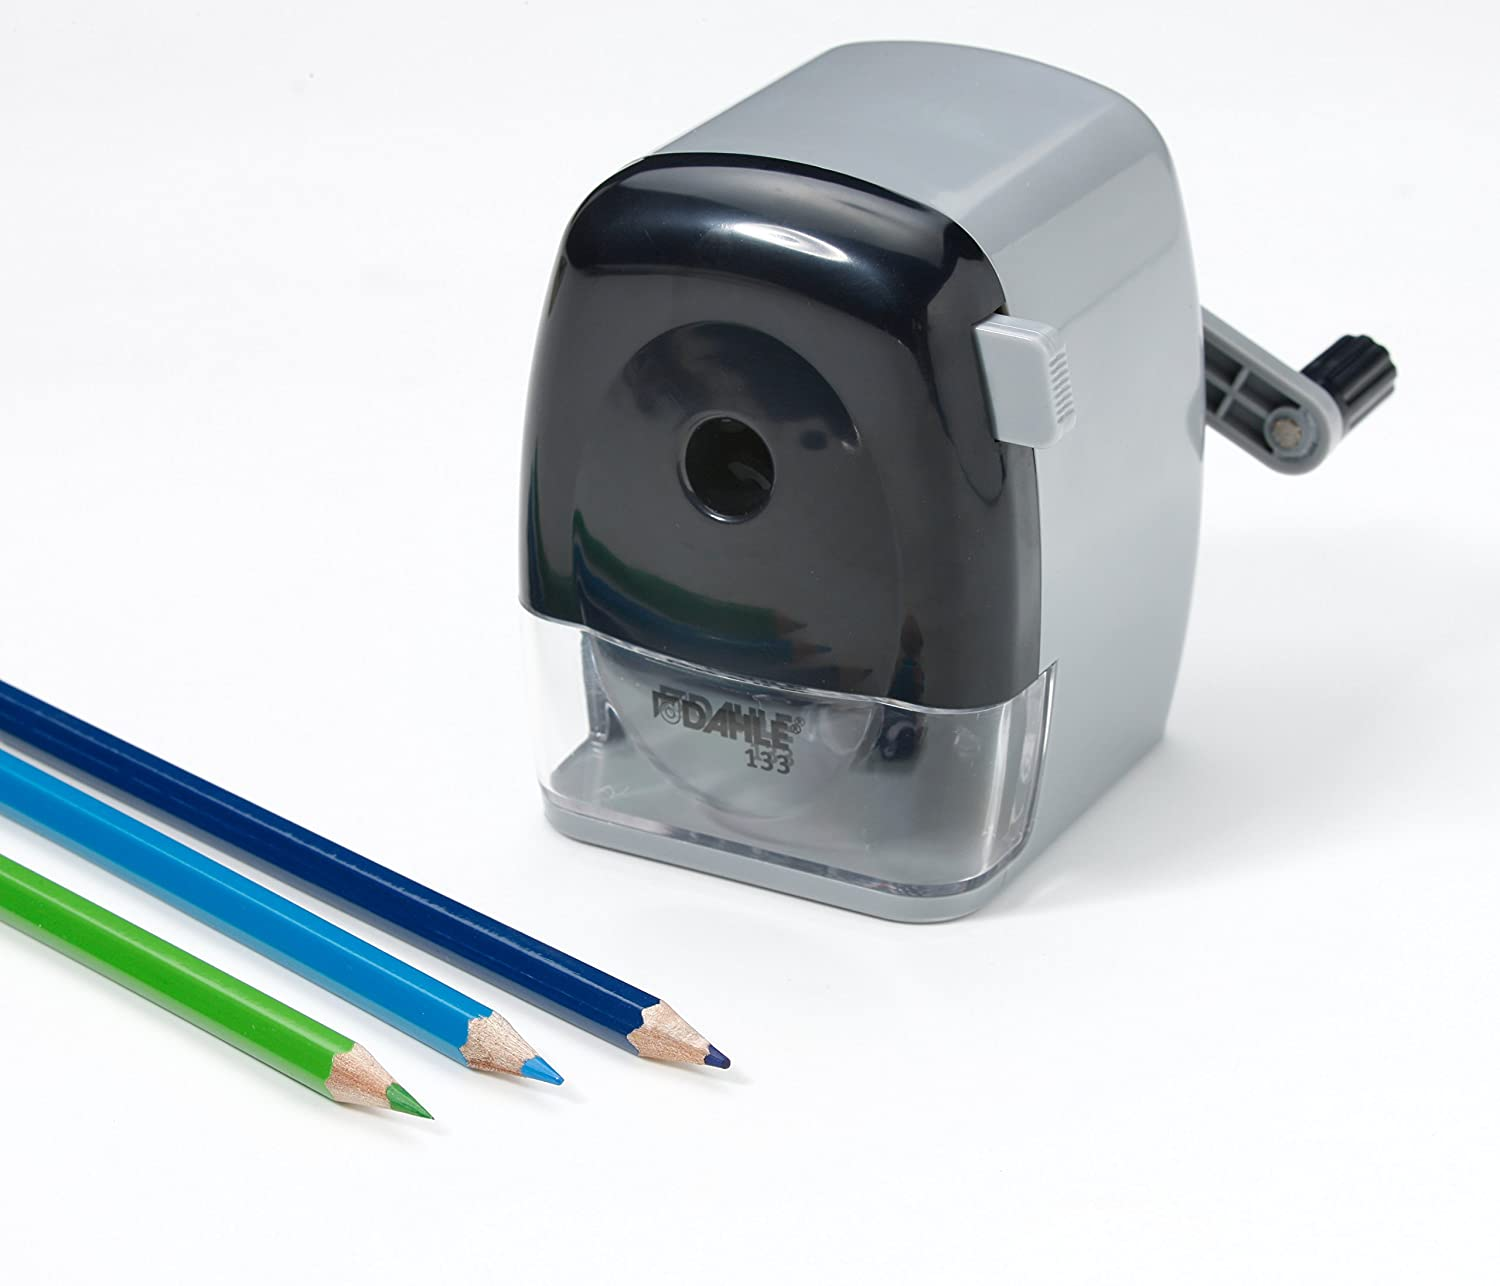 Dahle 133 Pencil Sharpener with Automatic Cutting System Accepts Standard Graphite or Oversized Artist Pencils Adjustable Point